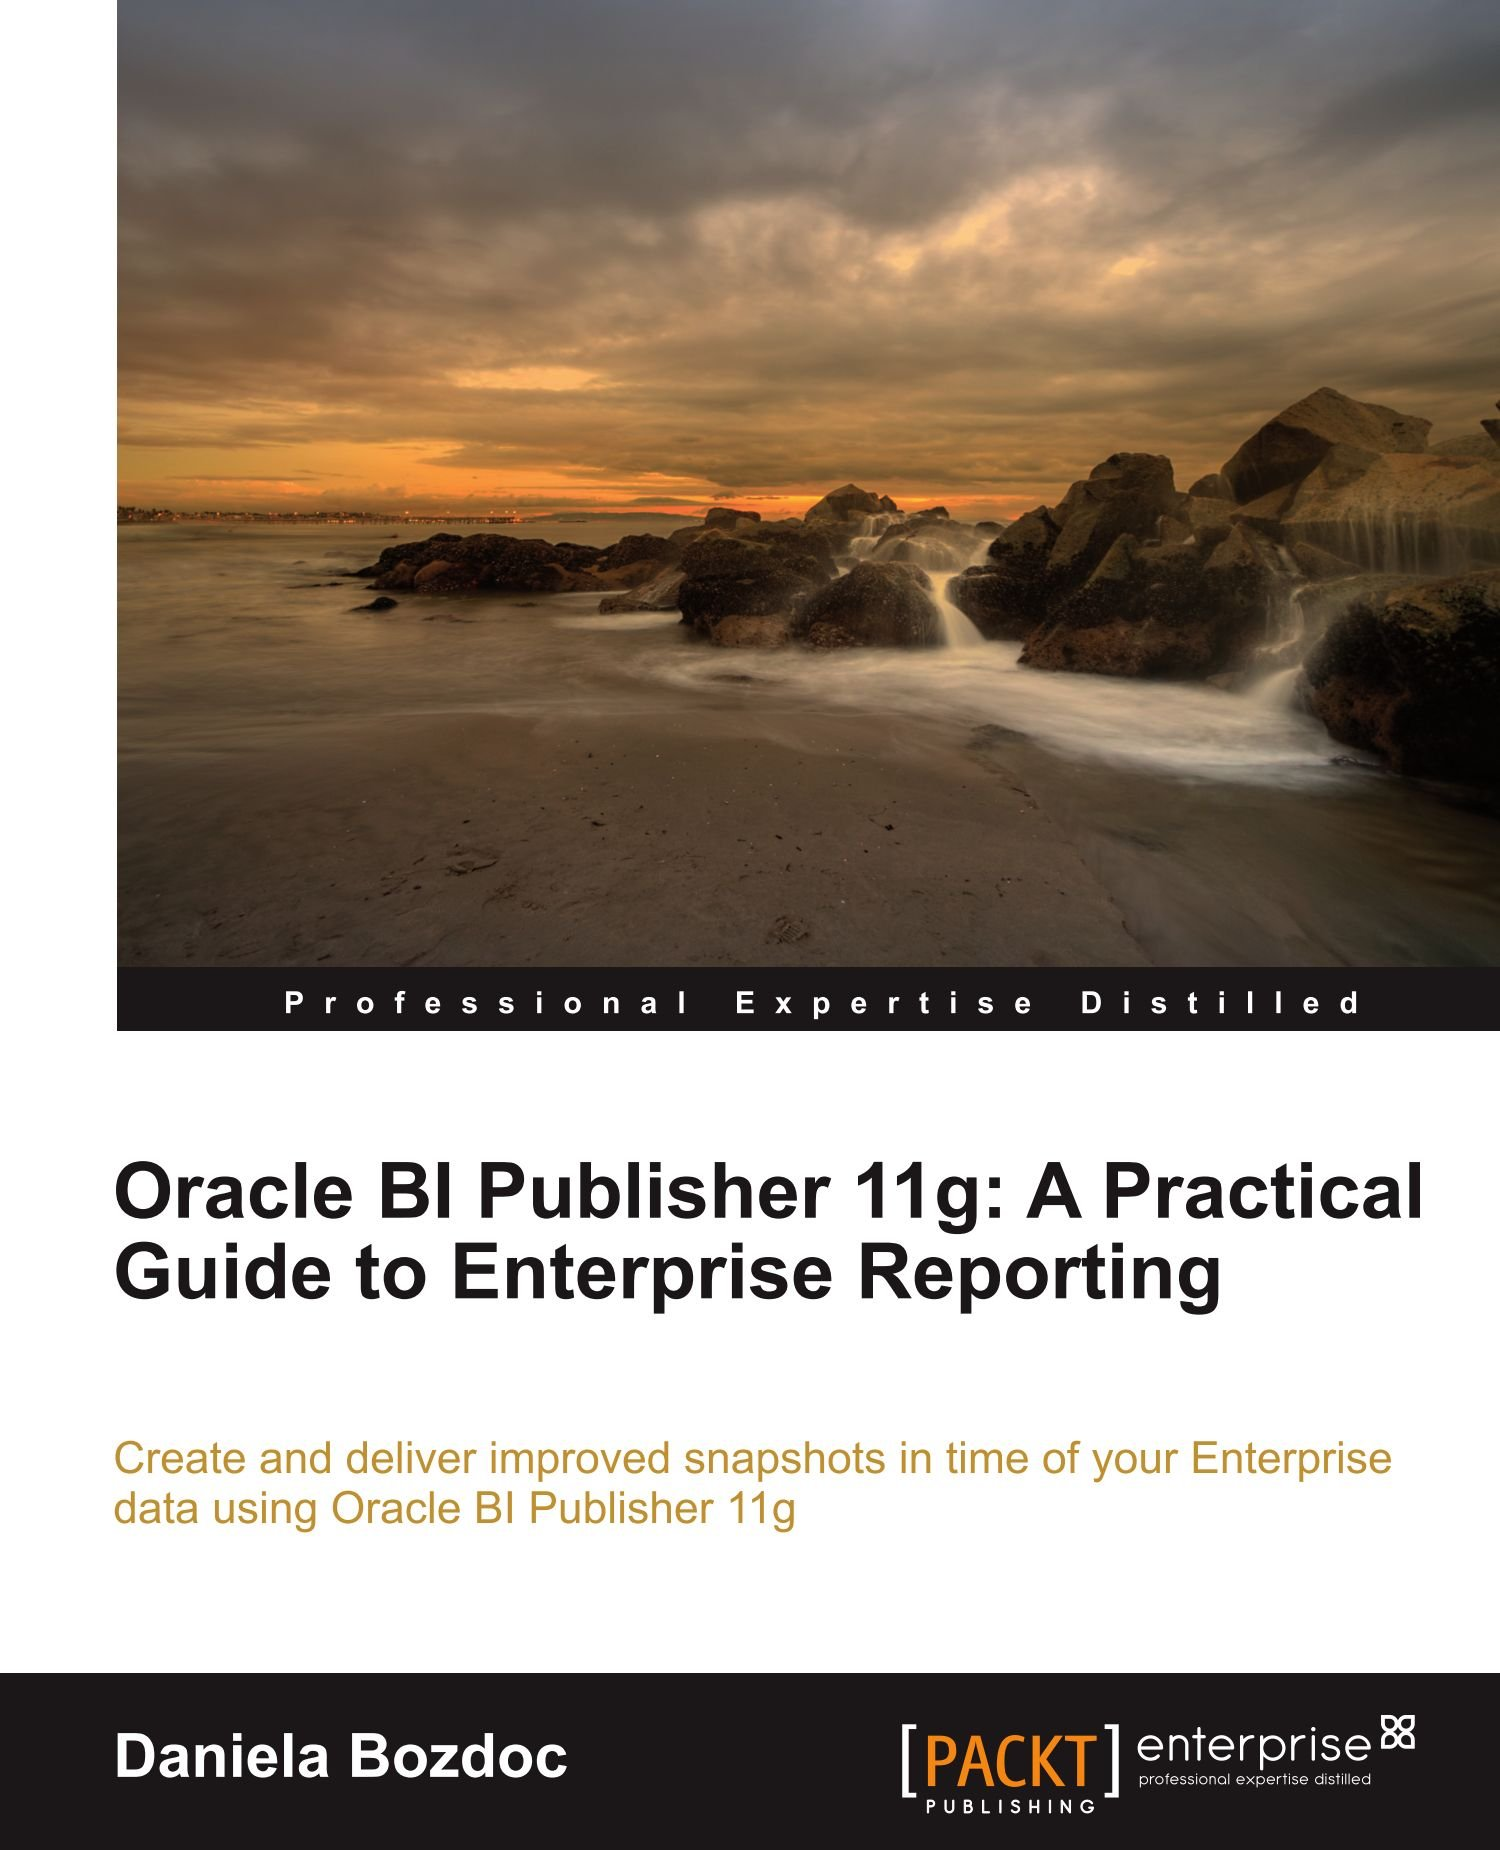 Oracle bi publisher 11g a practical guide to enterprise reporting oracle bi publisher 11g a practical guide to enterprise reporting daniela bozdoc 9781849683180 amazon books baditri Images